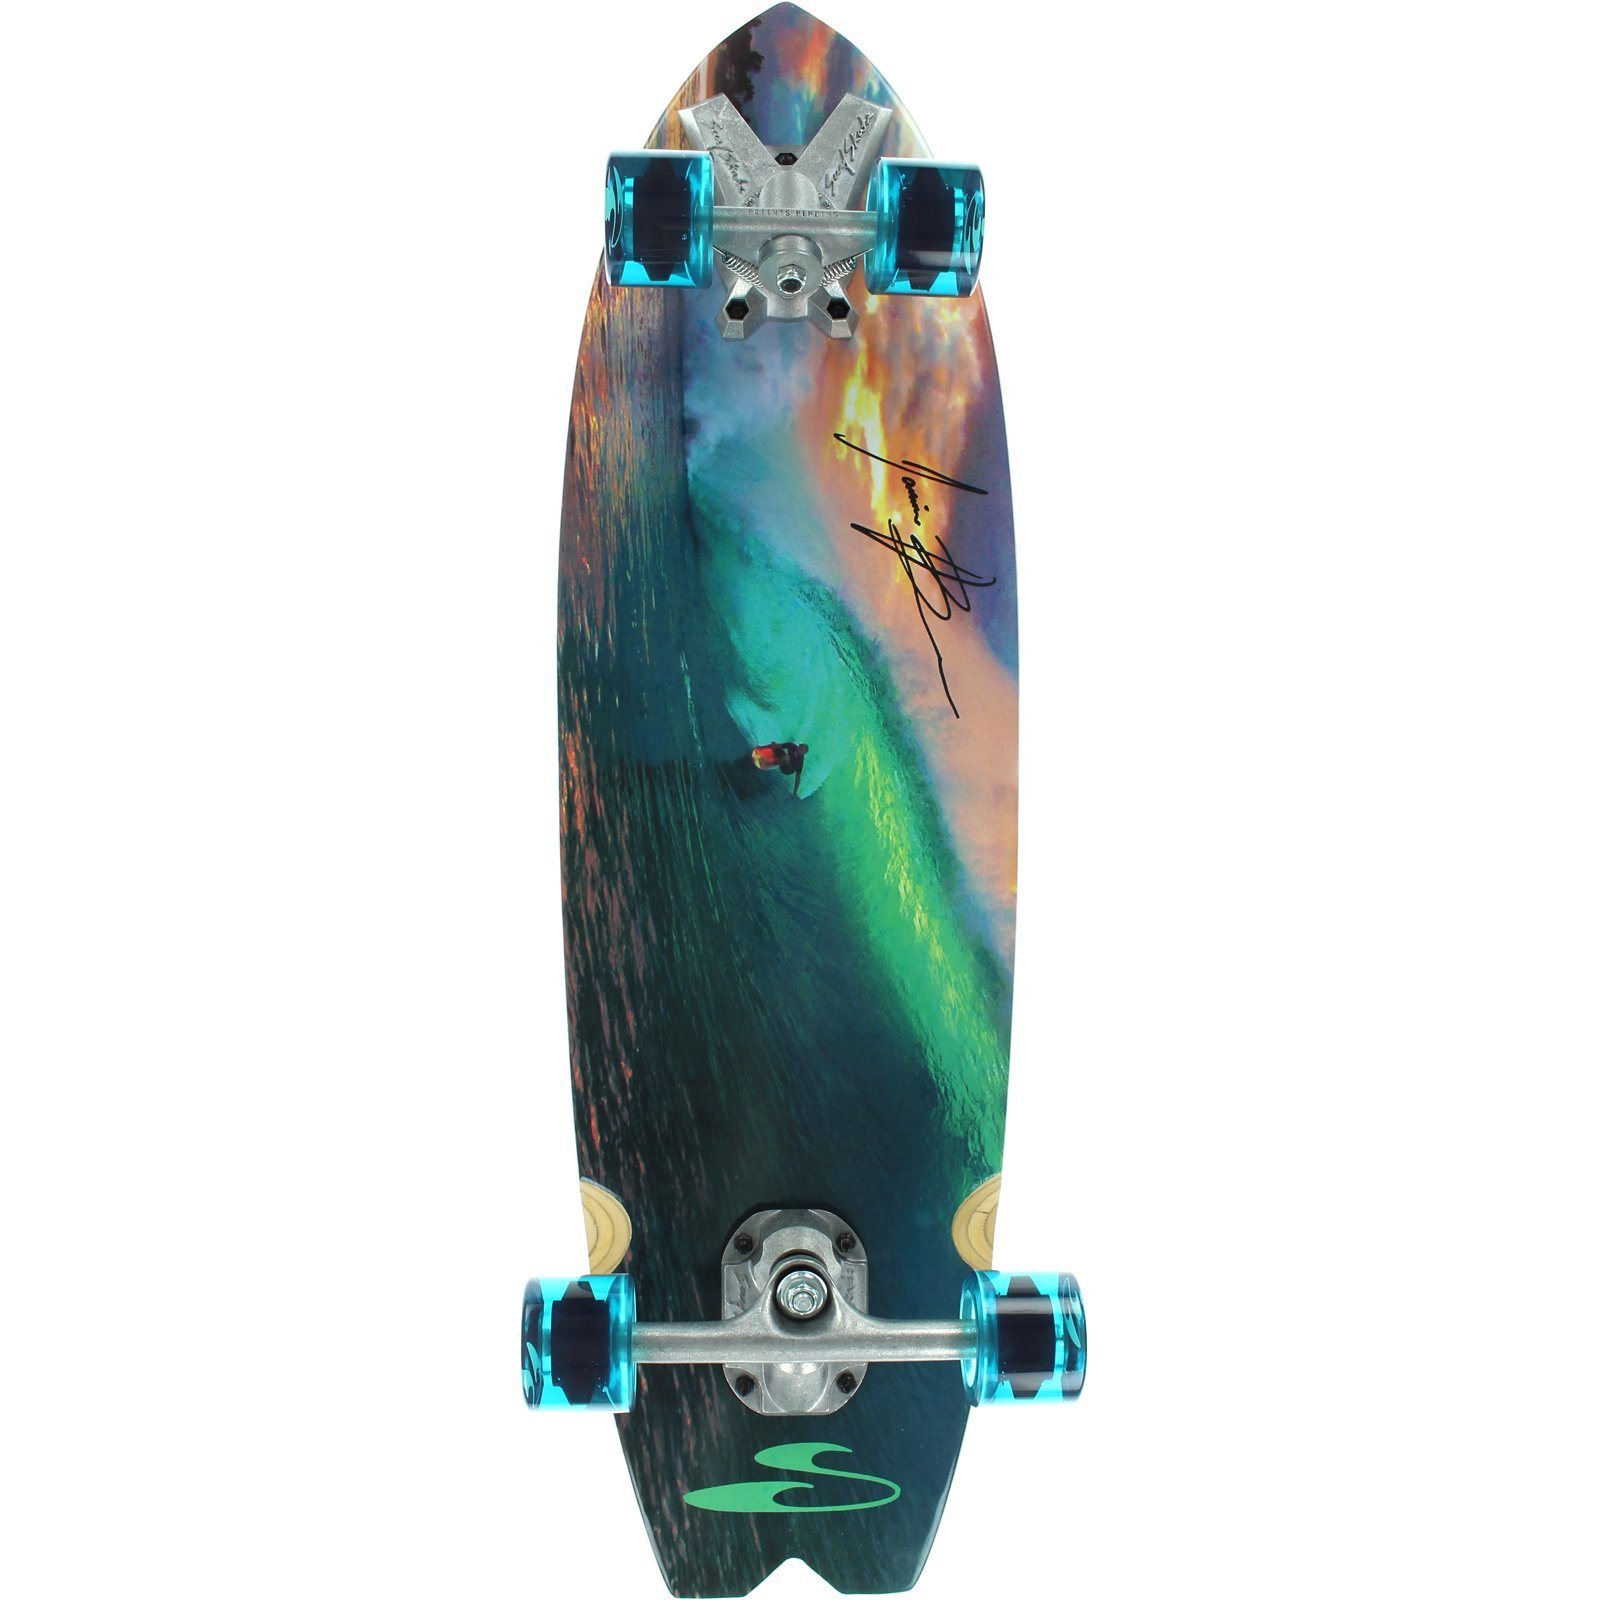 Surfskate Jamie O'Brien Complete Skateboard -9.6x34 by Surfskate